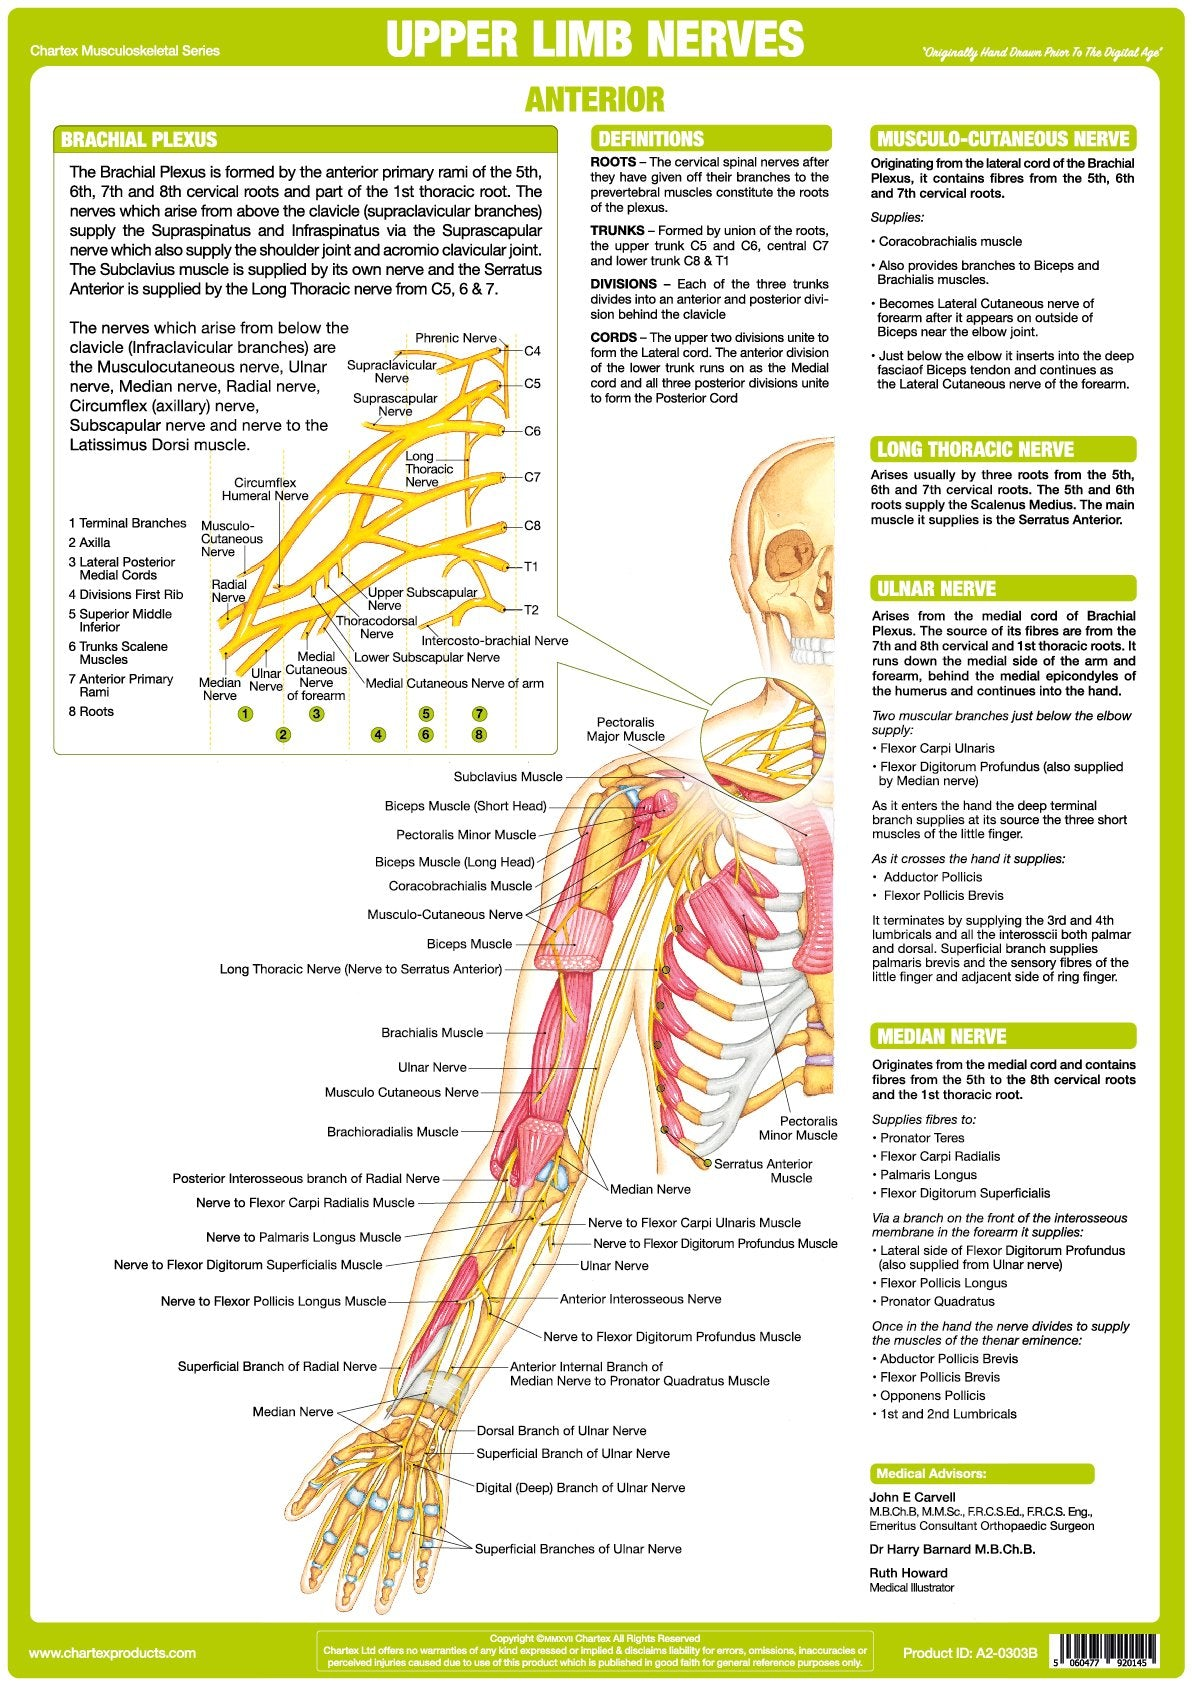 Upper Limb Nerve Chart - Anterior – Chartex Ltd